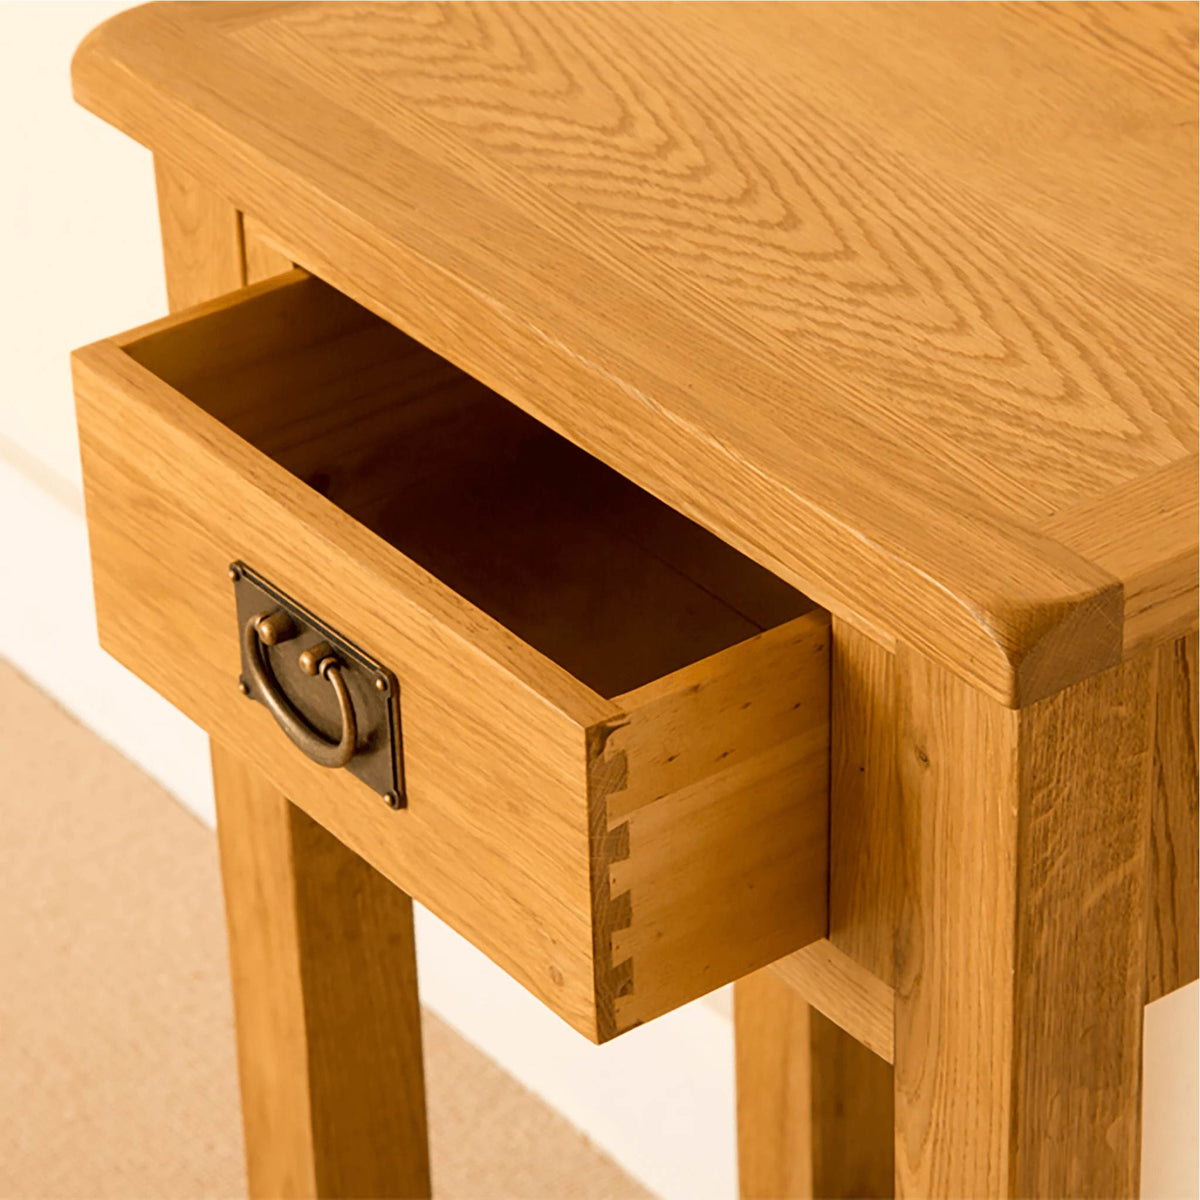 Lanner Oak Telephone Table drawer view